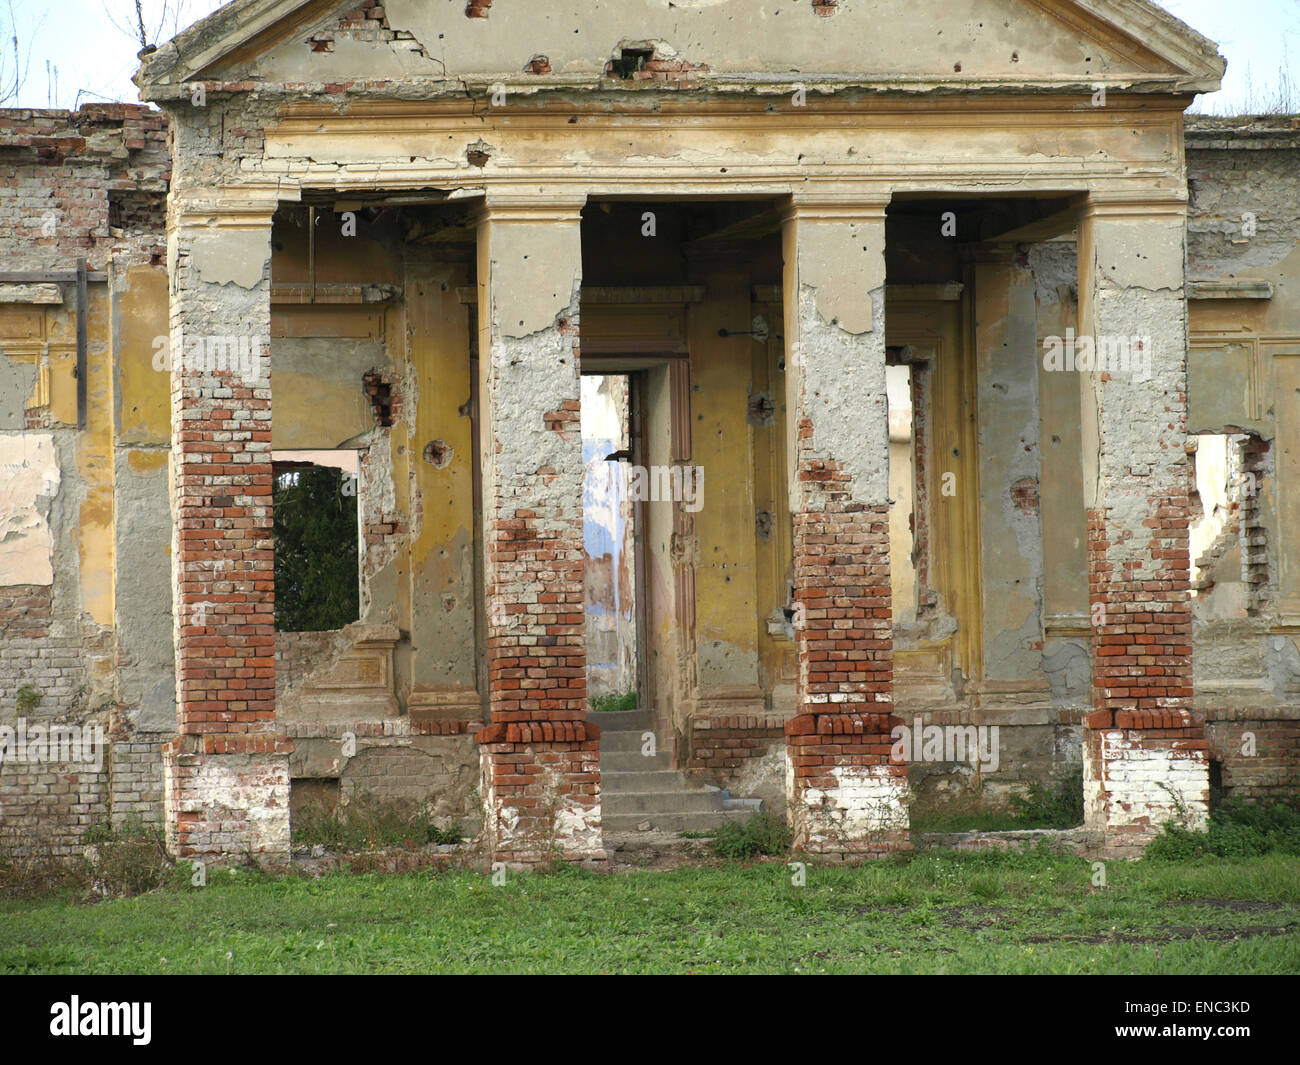 Demolished and destroyed the abandoned castle - Stock Image